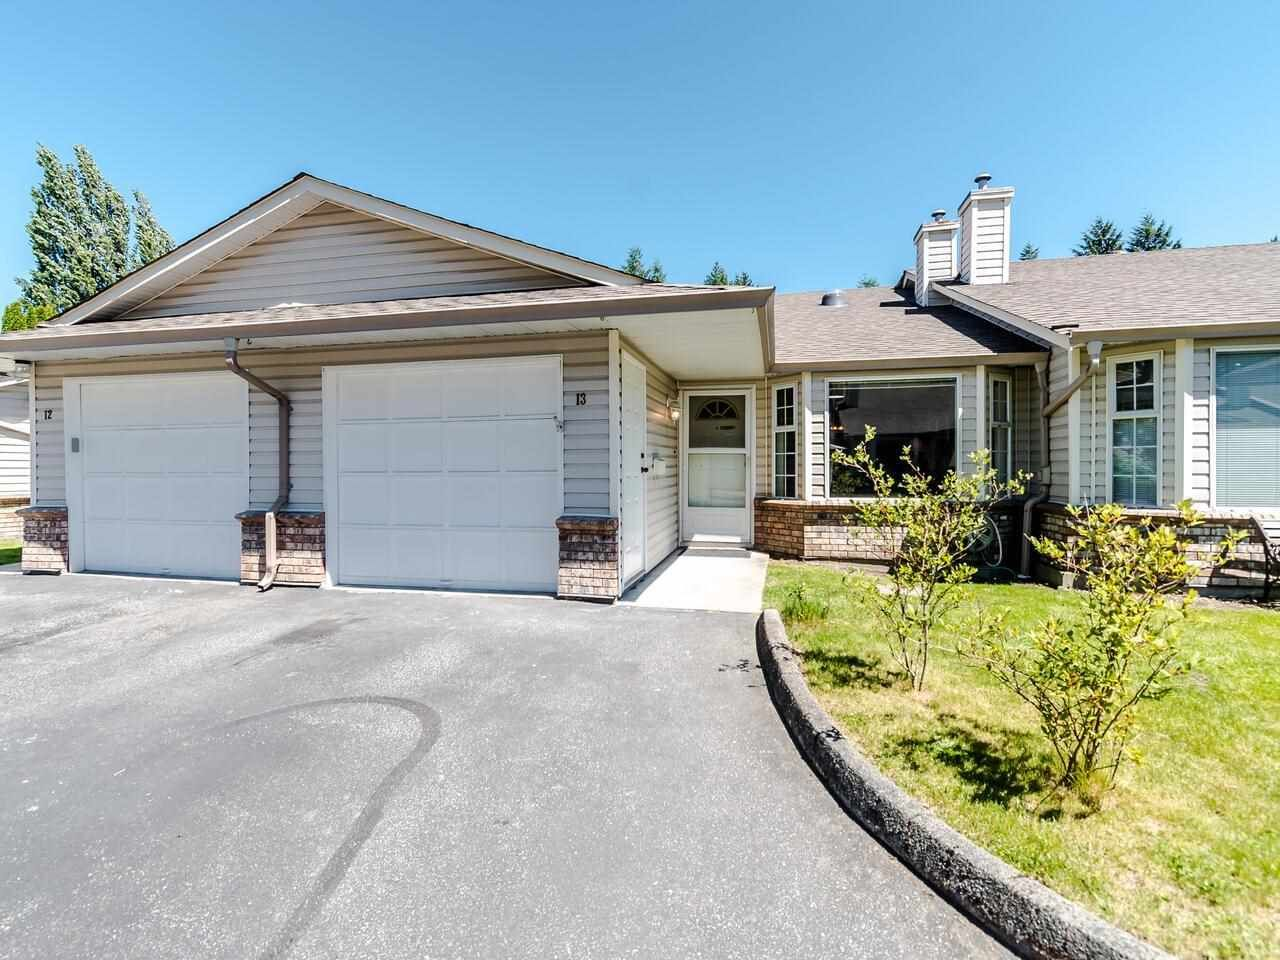 Rancher Style Townhome with attached Single garage and parking on the driveway